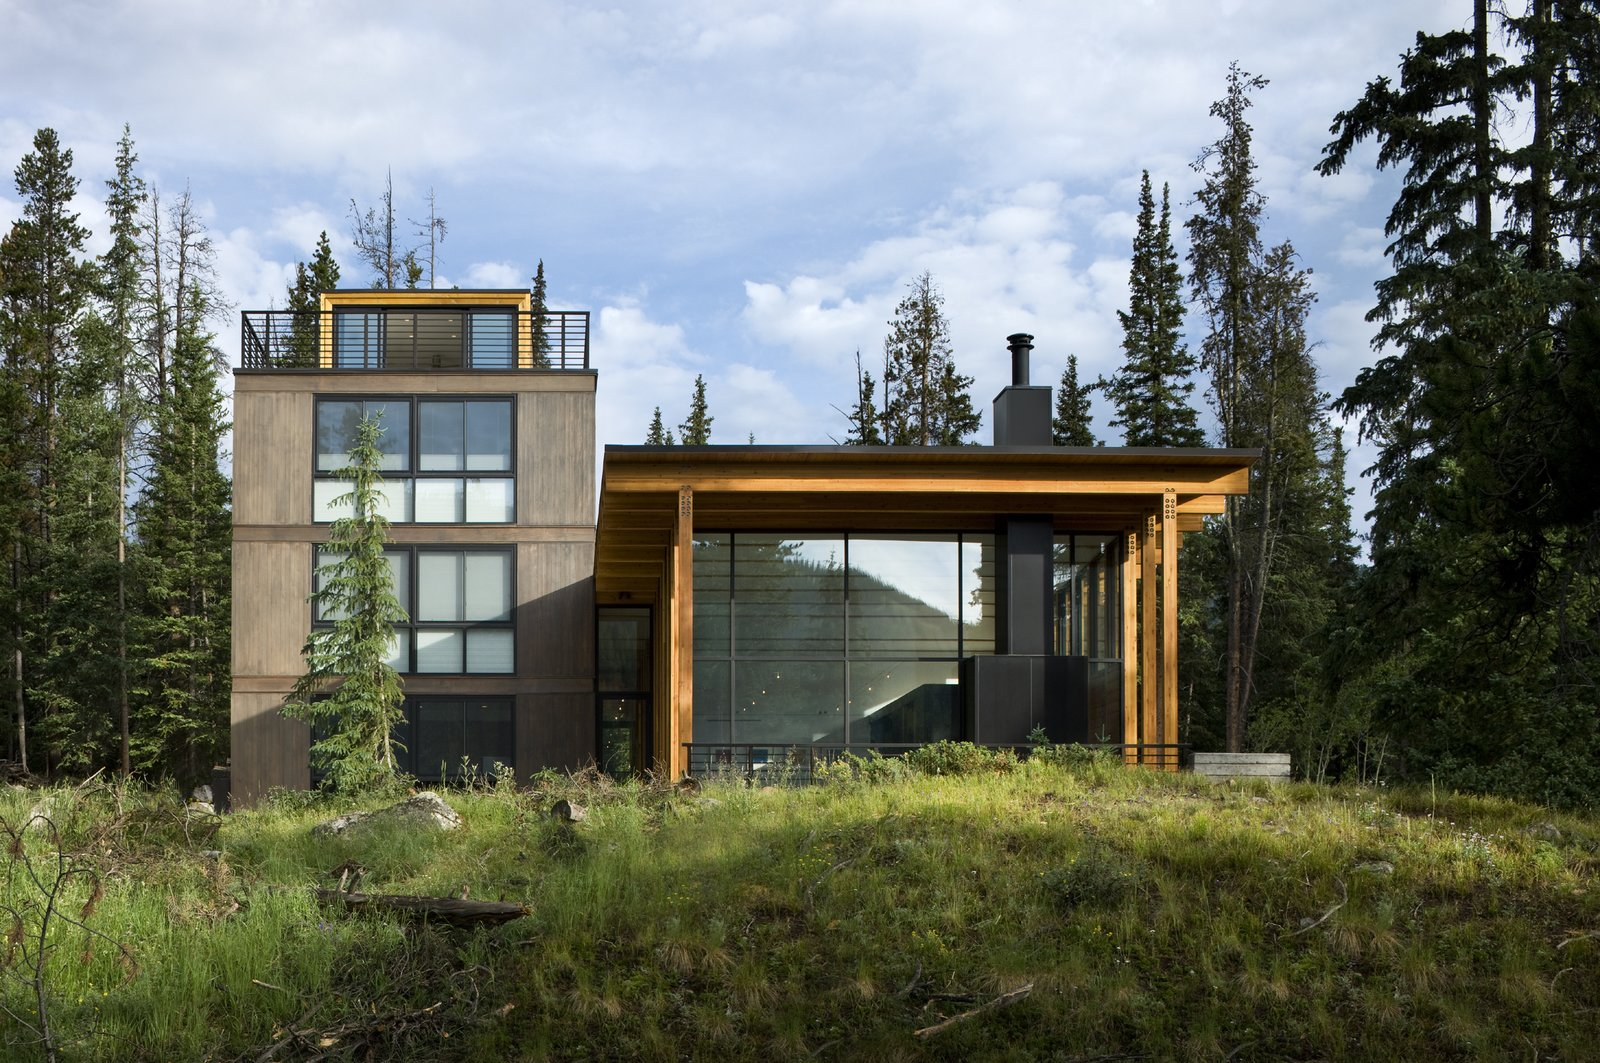 Tagged: Exterior, House, Concrete Siding Material, and Wood Siding Material.  Weigel Residence by Substance Architecture